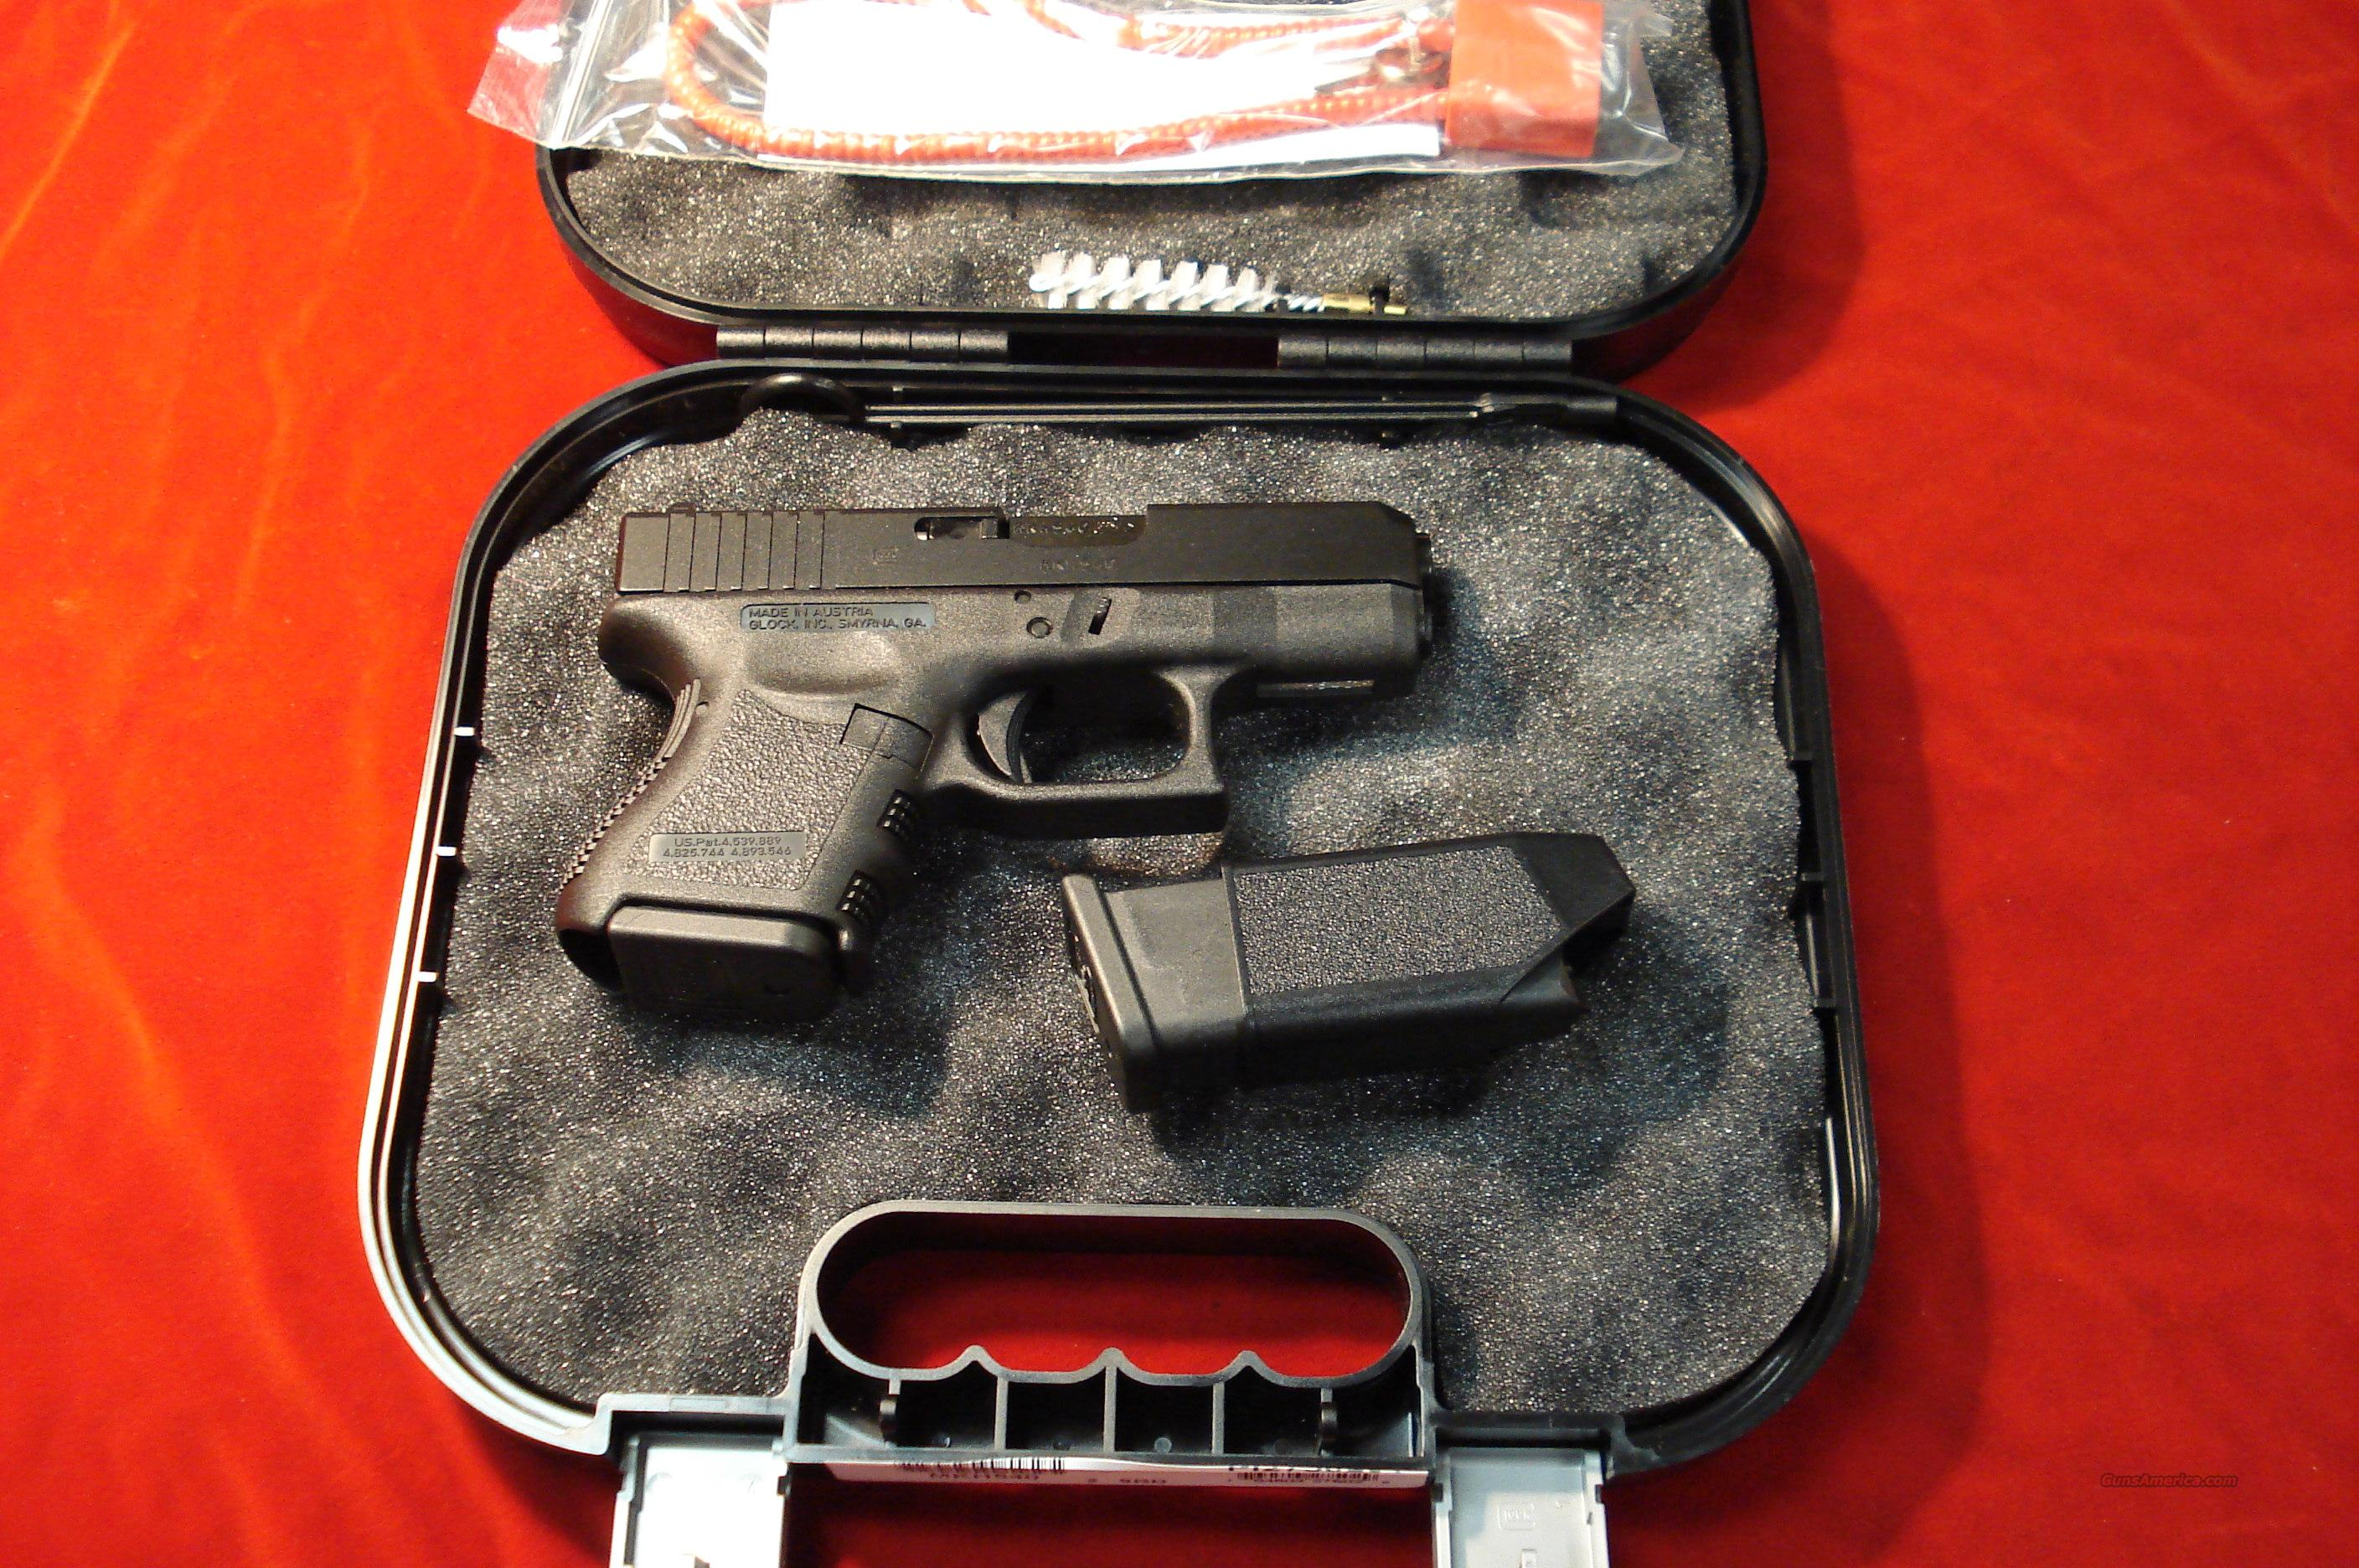 GLOCK MODEL 27 40S&W NEW    Guns > Pistols > Glock Pistols > 26/27